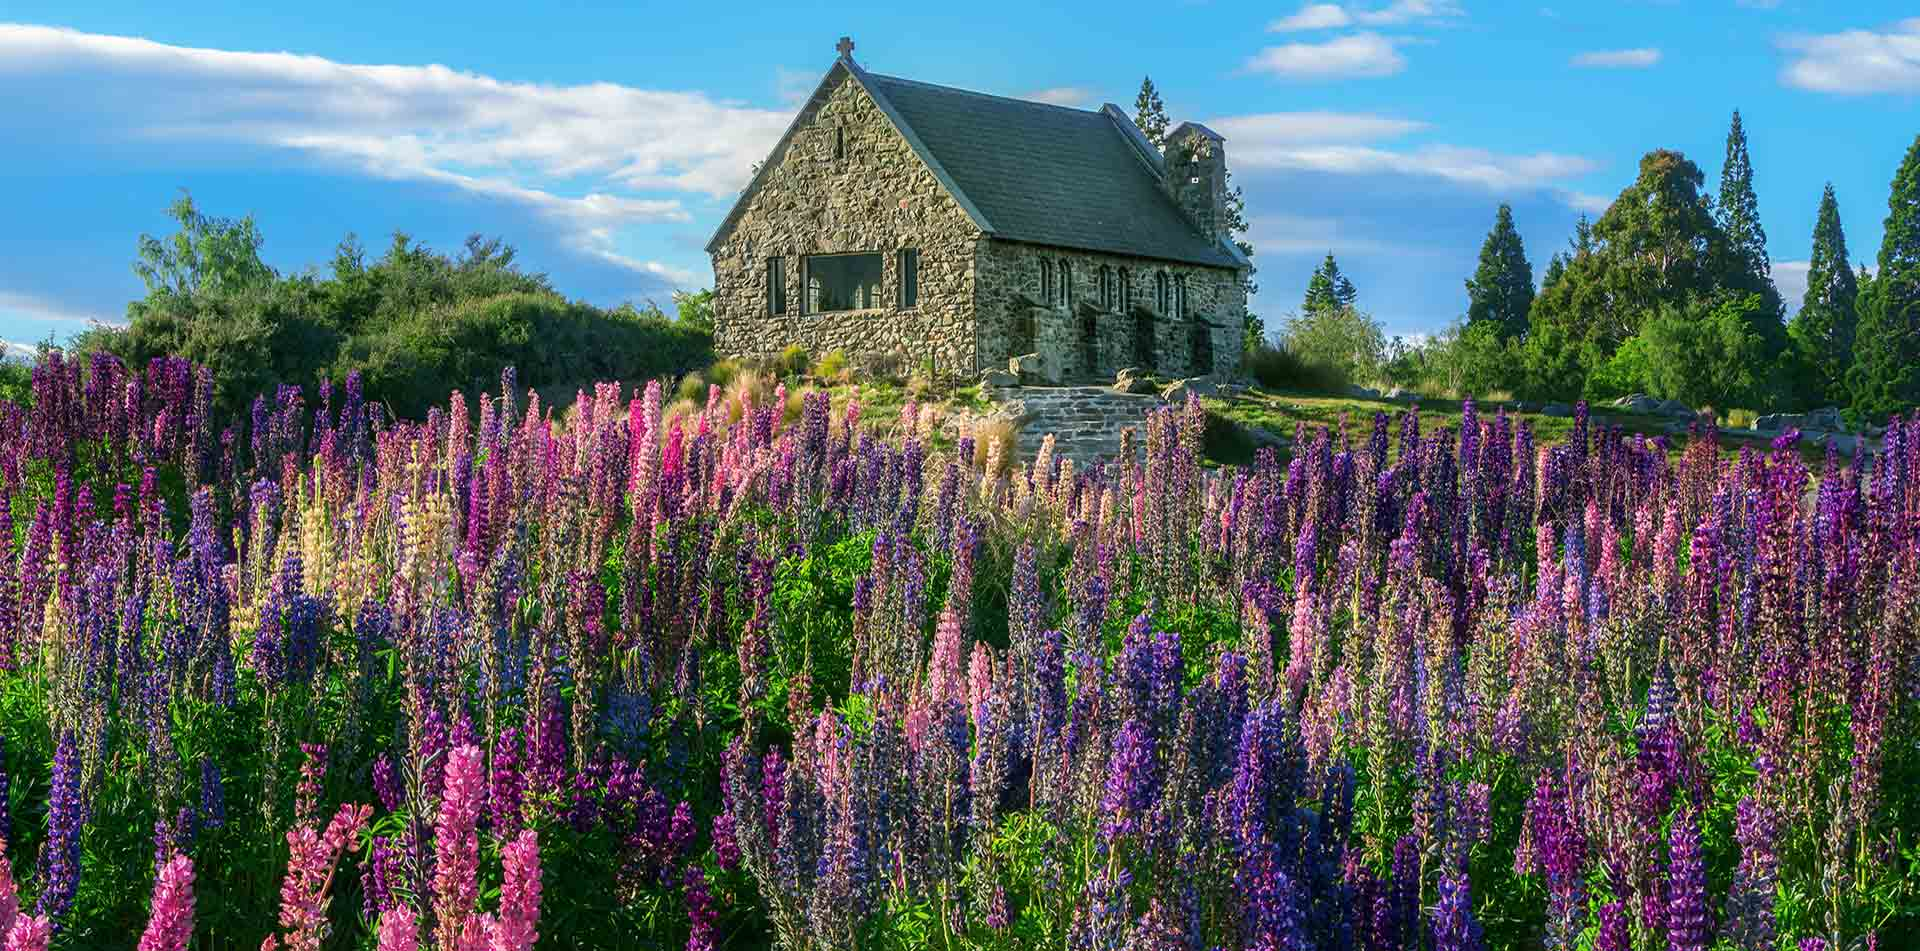 Oceania New Zealand South Island Lake Tekapo Church of Good Shepherd with wildflowers - luxury vacation destinations